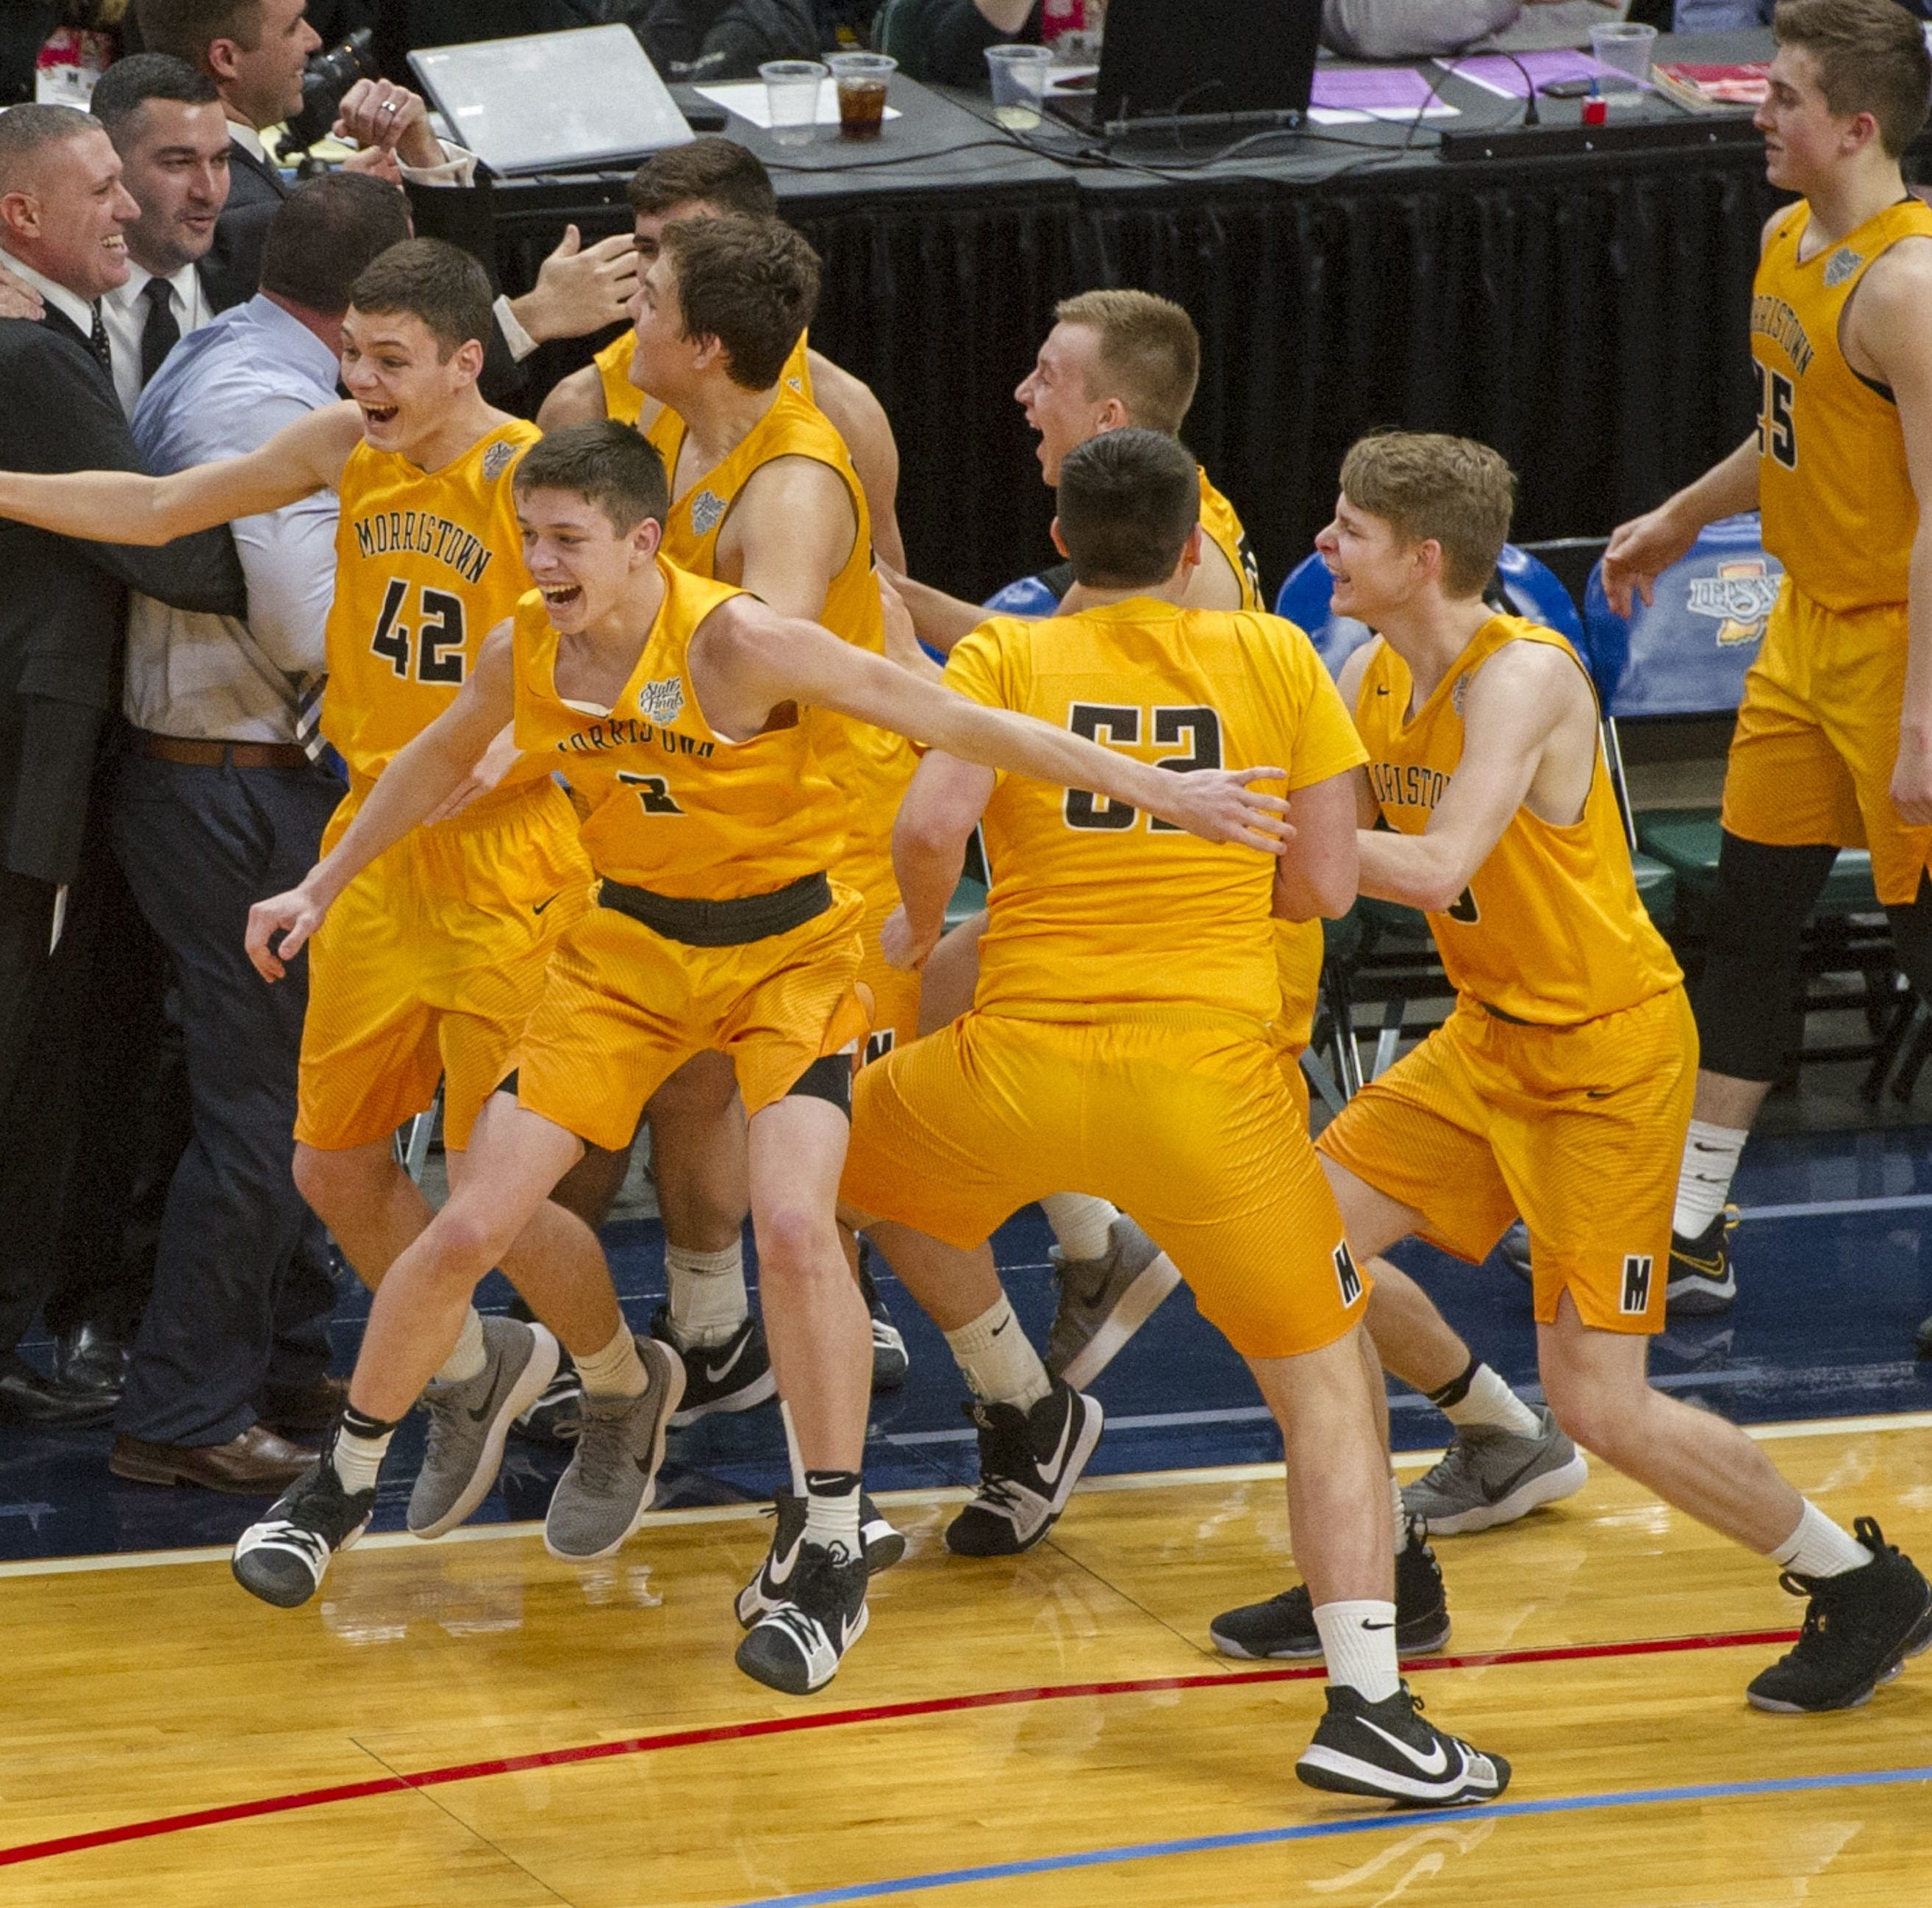 IHSAA basketball sectional draw live blog: Class 3A is complete